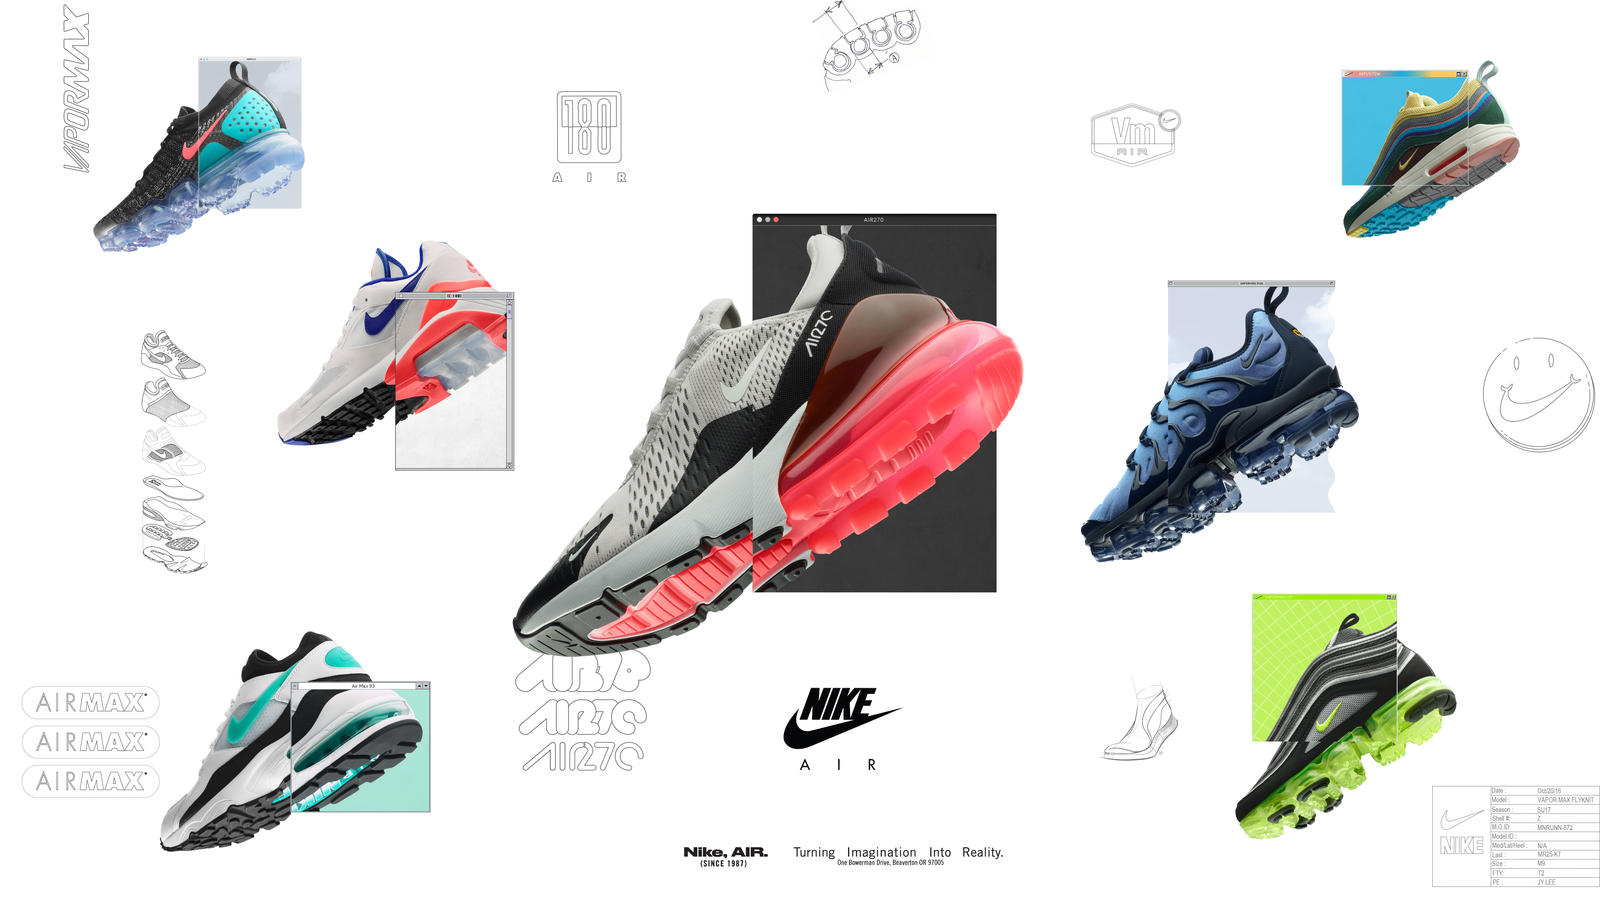 8865edec8c4360 Air Max Day 2018 Line Up - Nike News